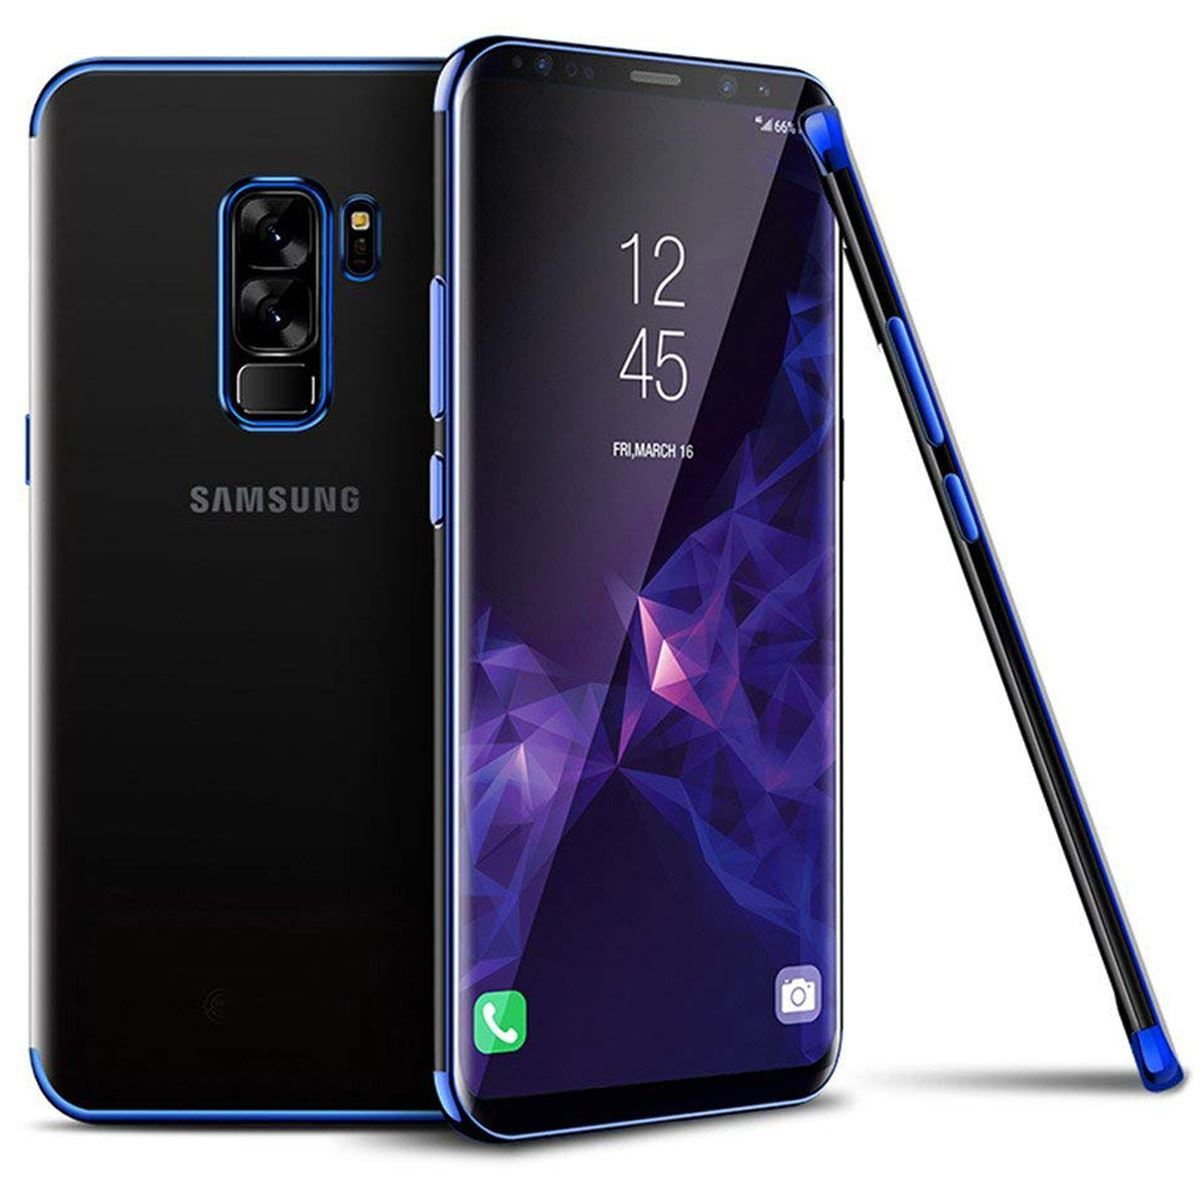 Samsung Galaxy Note 9 Case Silicone Gel Clear Cover - Blue